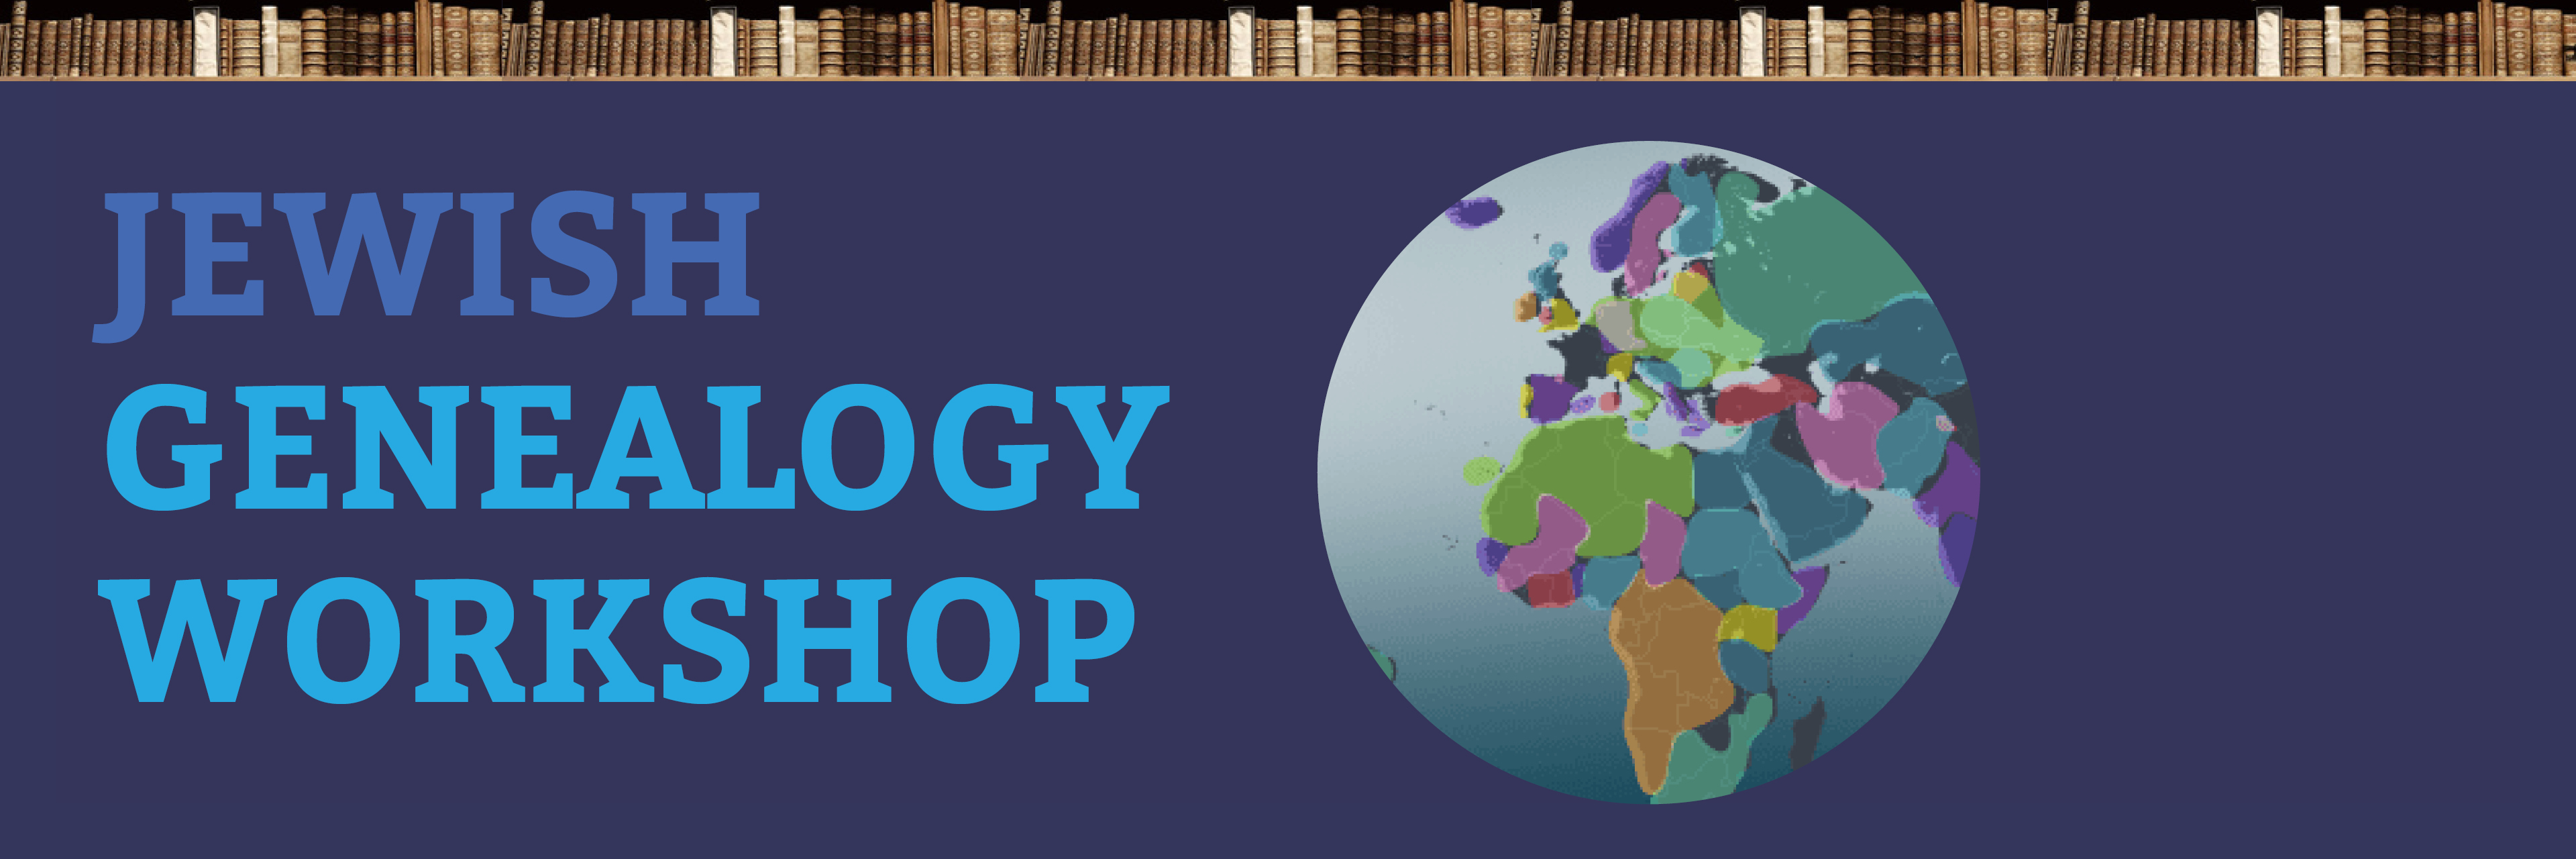 "<a href=""https://www.congkti.org/event/jewish-genealogy-workshop.html""